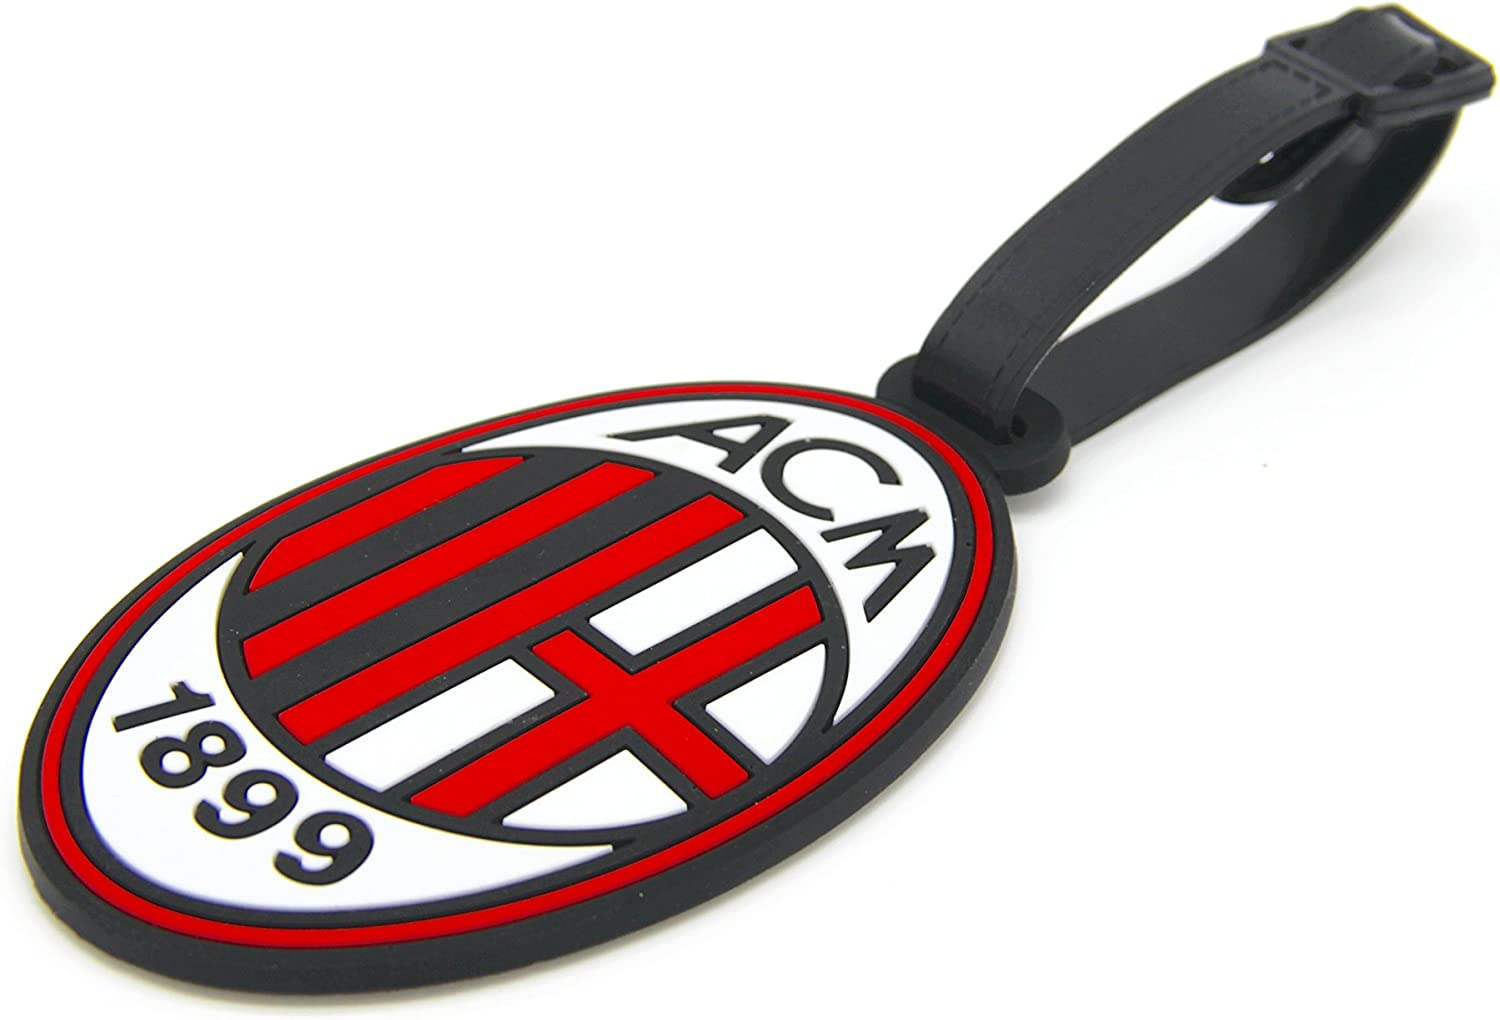 CellDesigns Set of 2 Soccer Team Football Club Luggage Tag Suitcase ID Tag with Adjustable Strap (A.C. Milan)